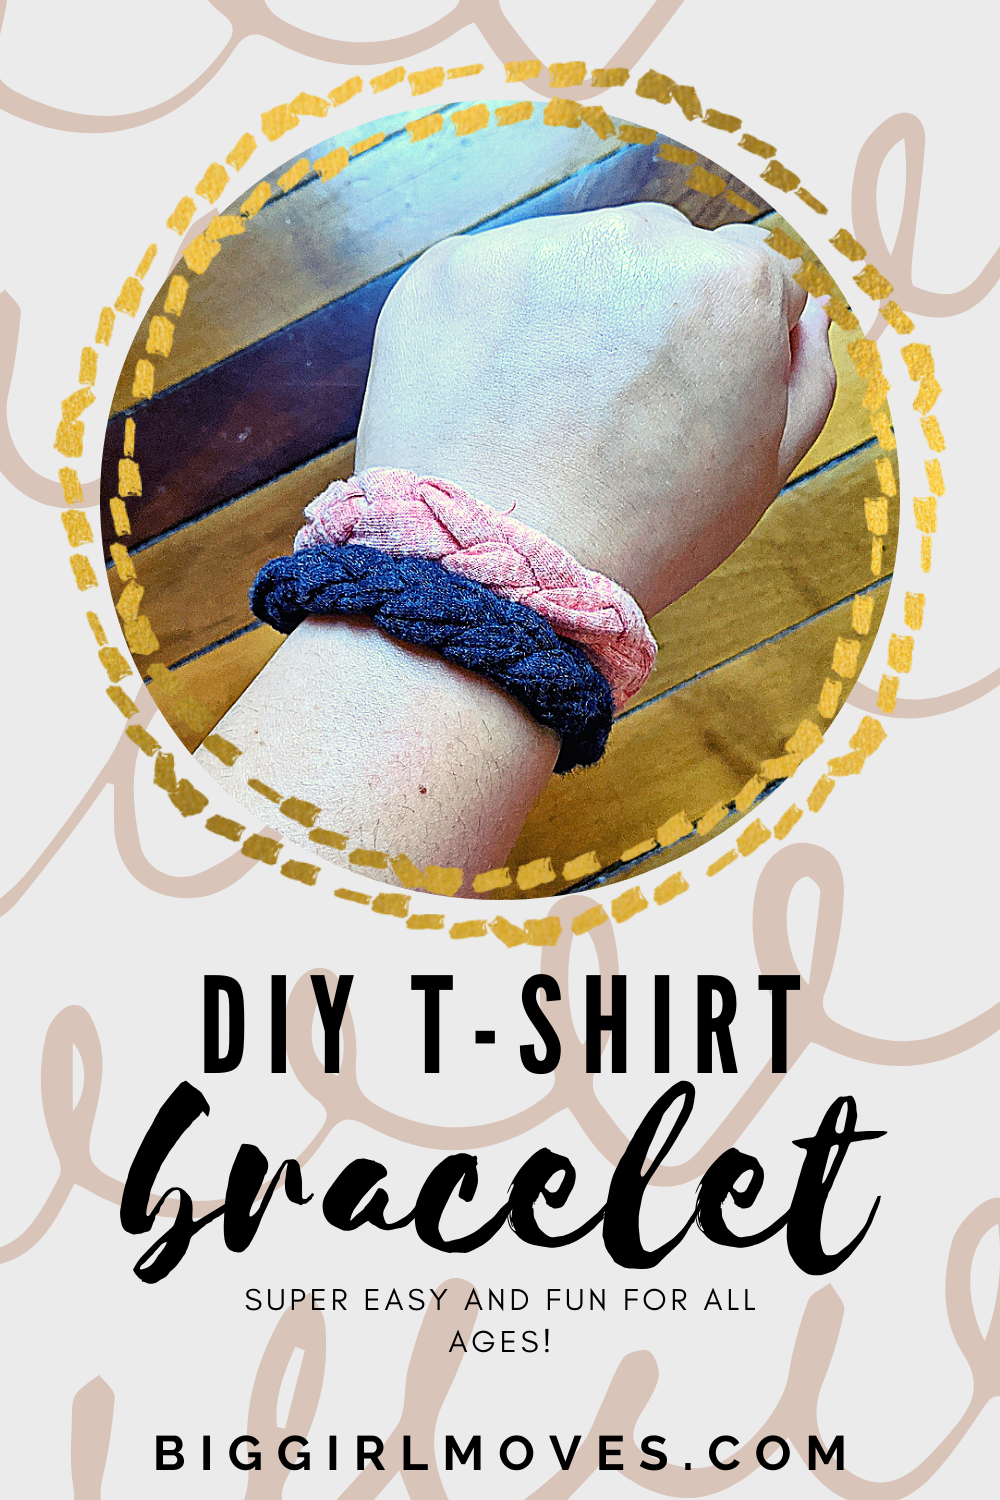 This is a super fun project to do with your kids during quarantine. They can make each other friendship bracelets out of their old play clothes! #recycle #reduce #reuse #upcycling #tshirt #bracelet #funthings #quarantine #familyfriendly #kidproject #diy #easydiy #quickdiy #video #tutorial